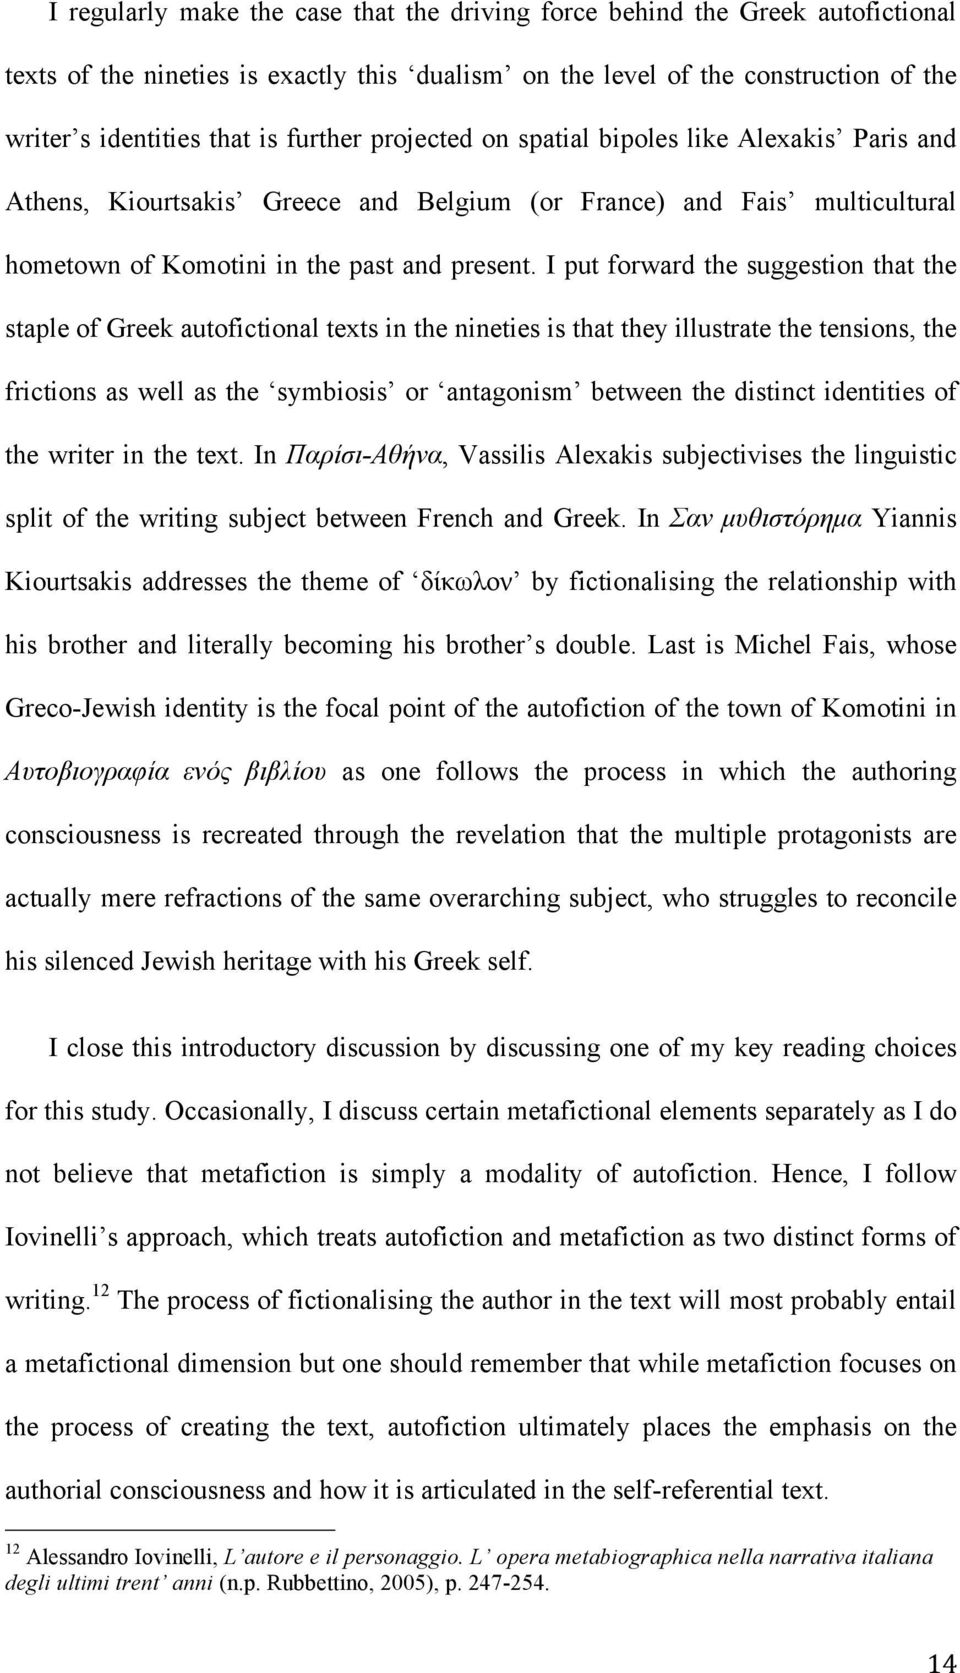 I put forward the suggestion that the staple of Greek autofictional texts in the nineties is that they illustrate the tensions, the frictions as well as the symbiosis or antagonism between the